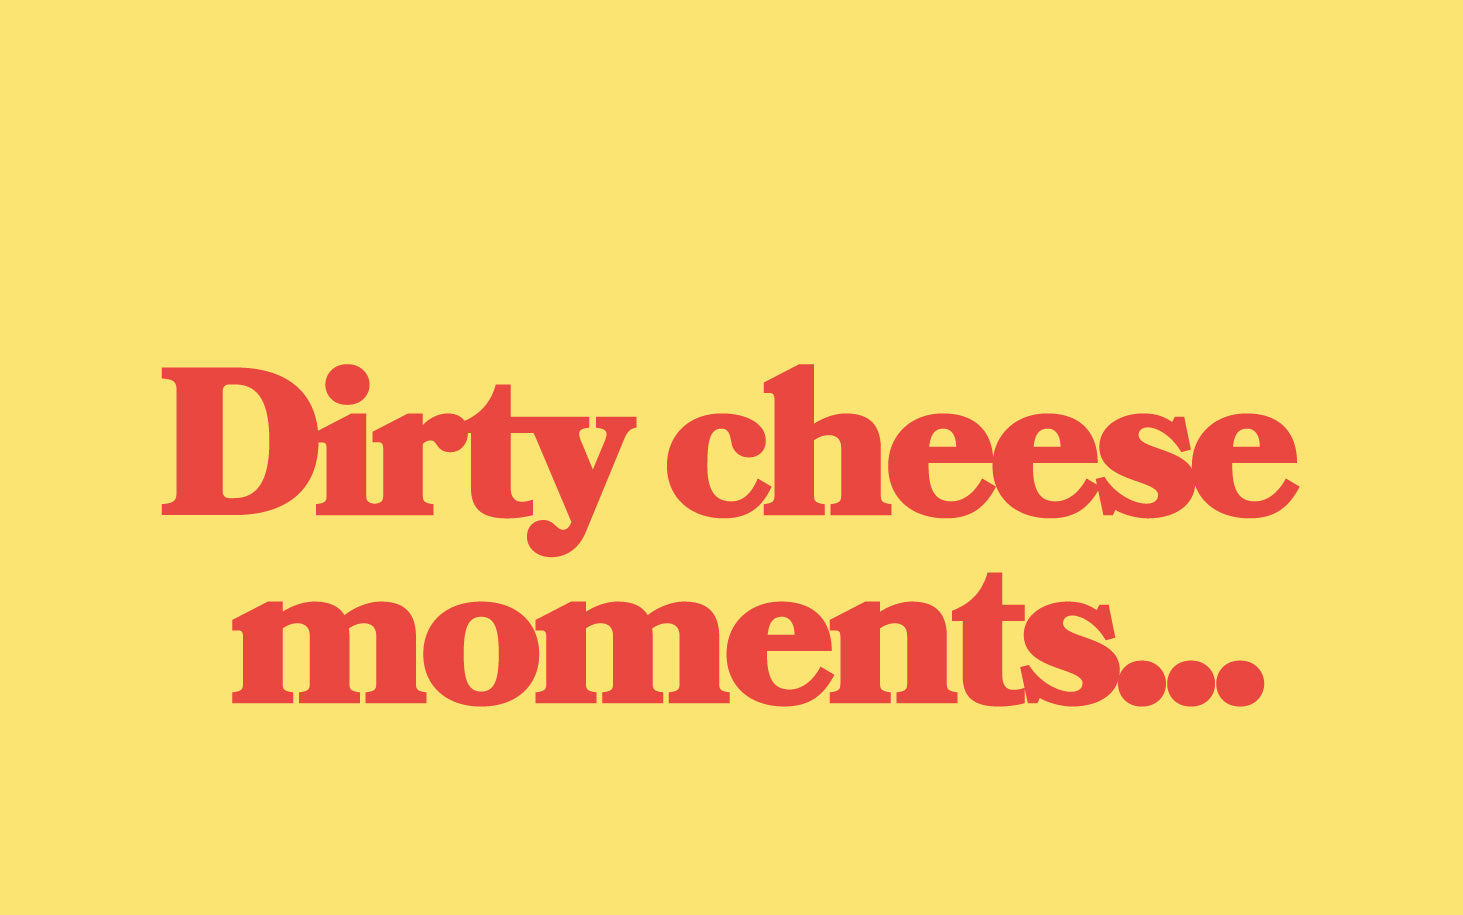 Dirty Cheese Moments....